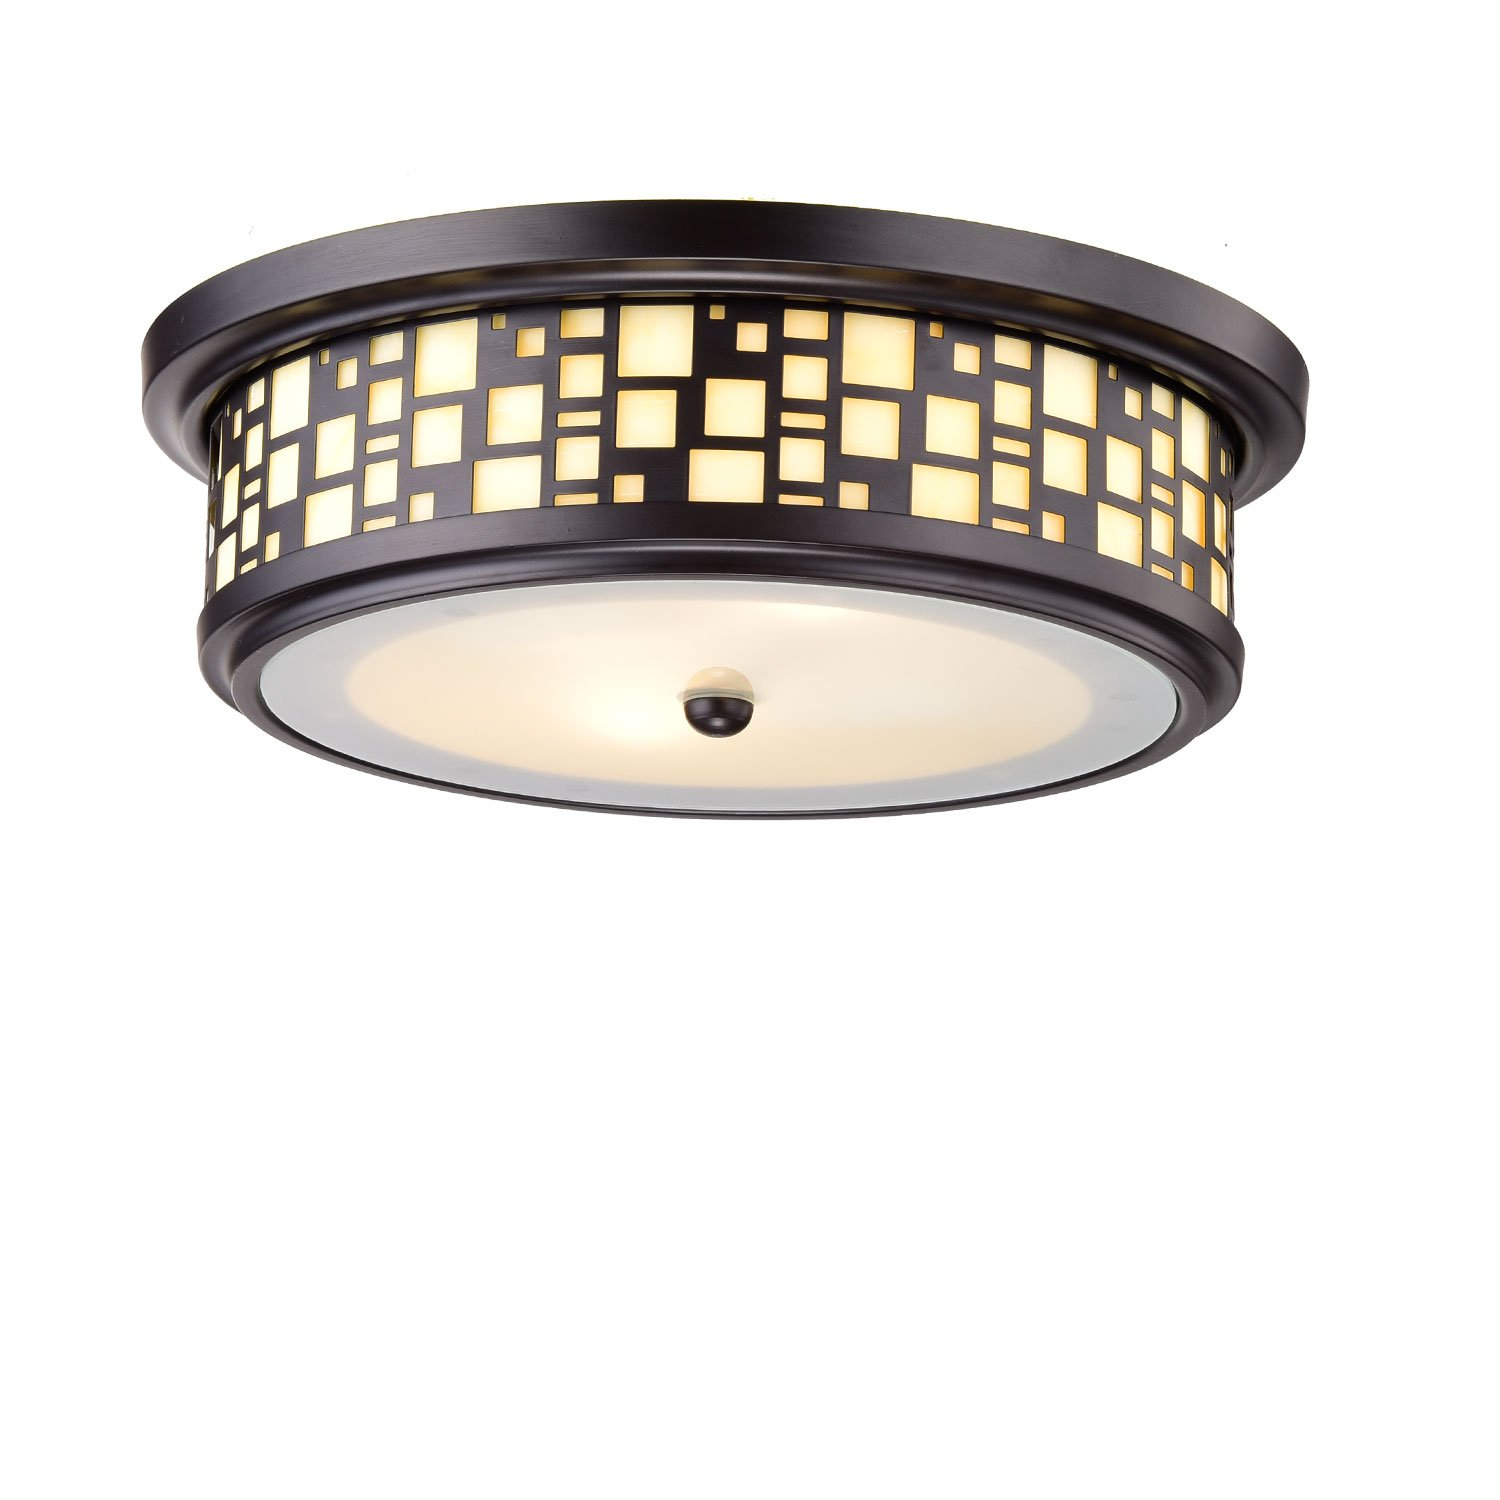 YOBO Lighting 2 Light Resin Flush-Mount Ceiling Lights, Oil Rubbed Bronze Finish on Steel with Frosted Glass